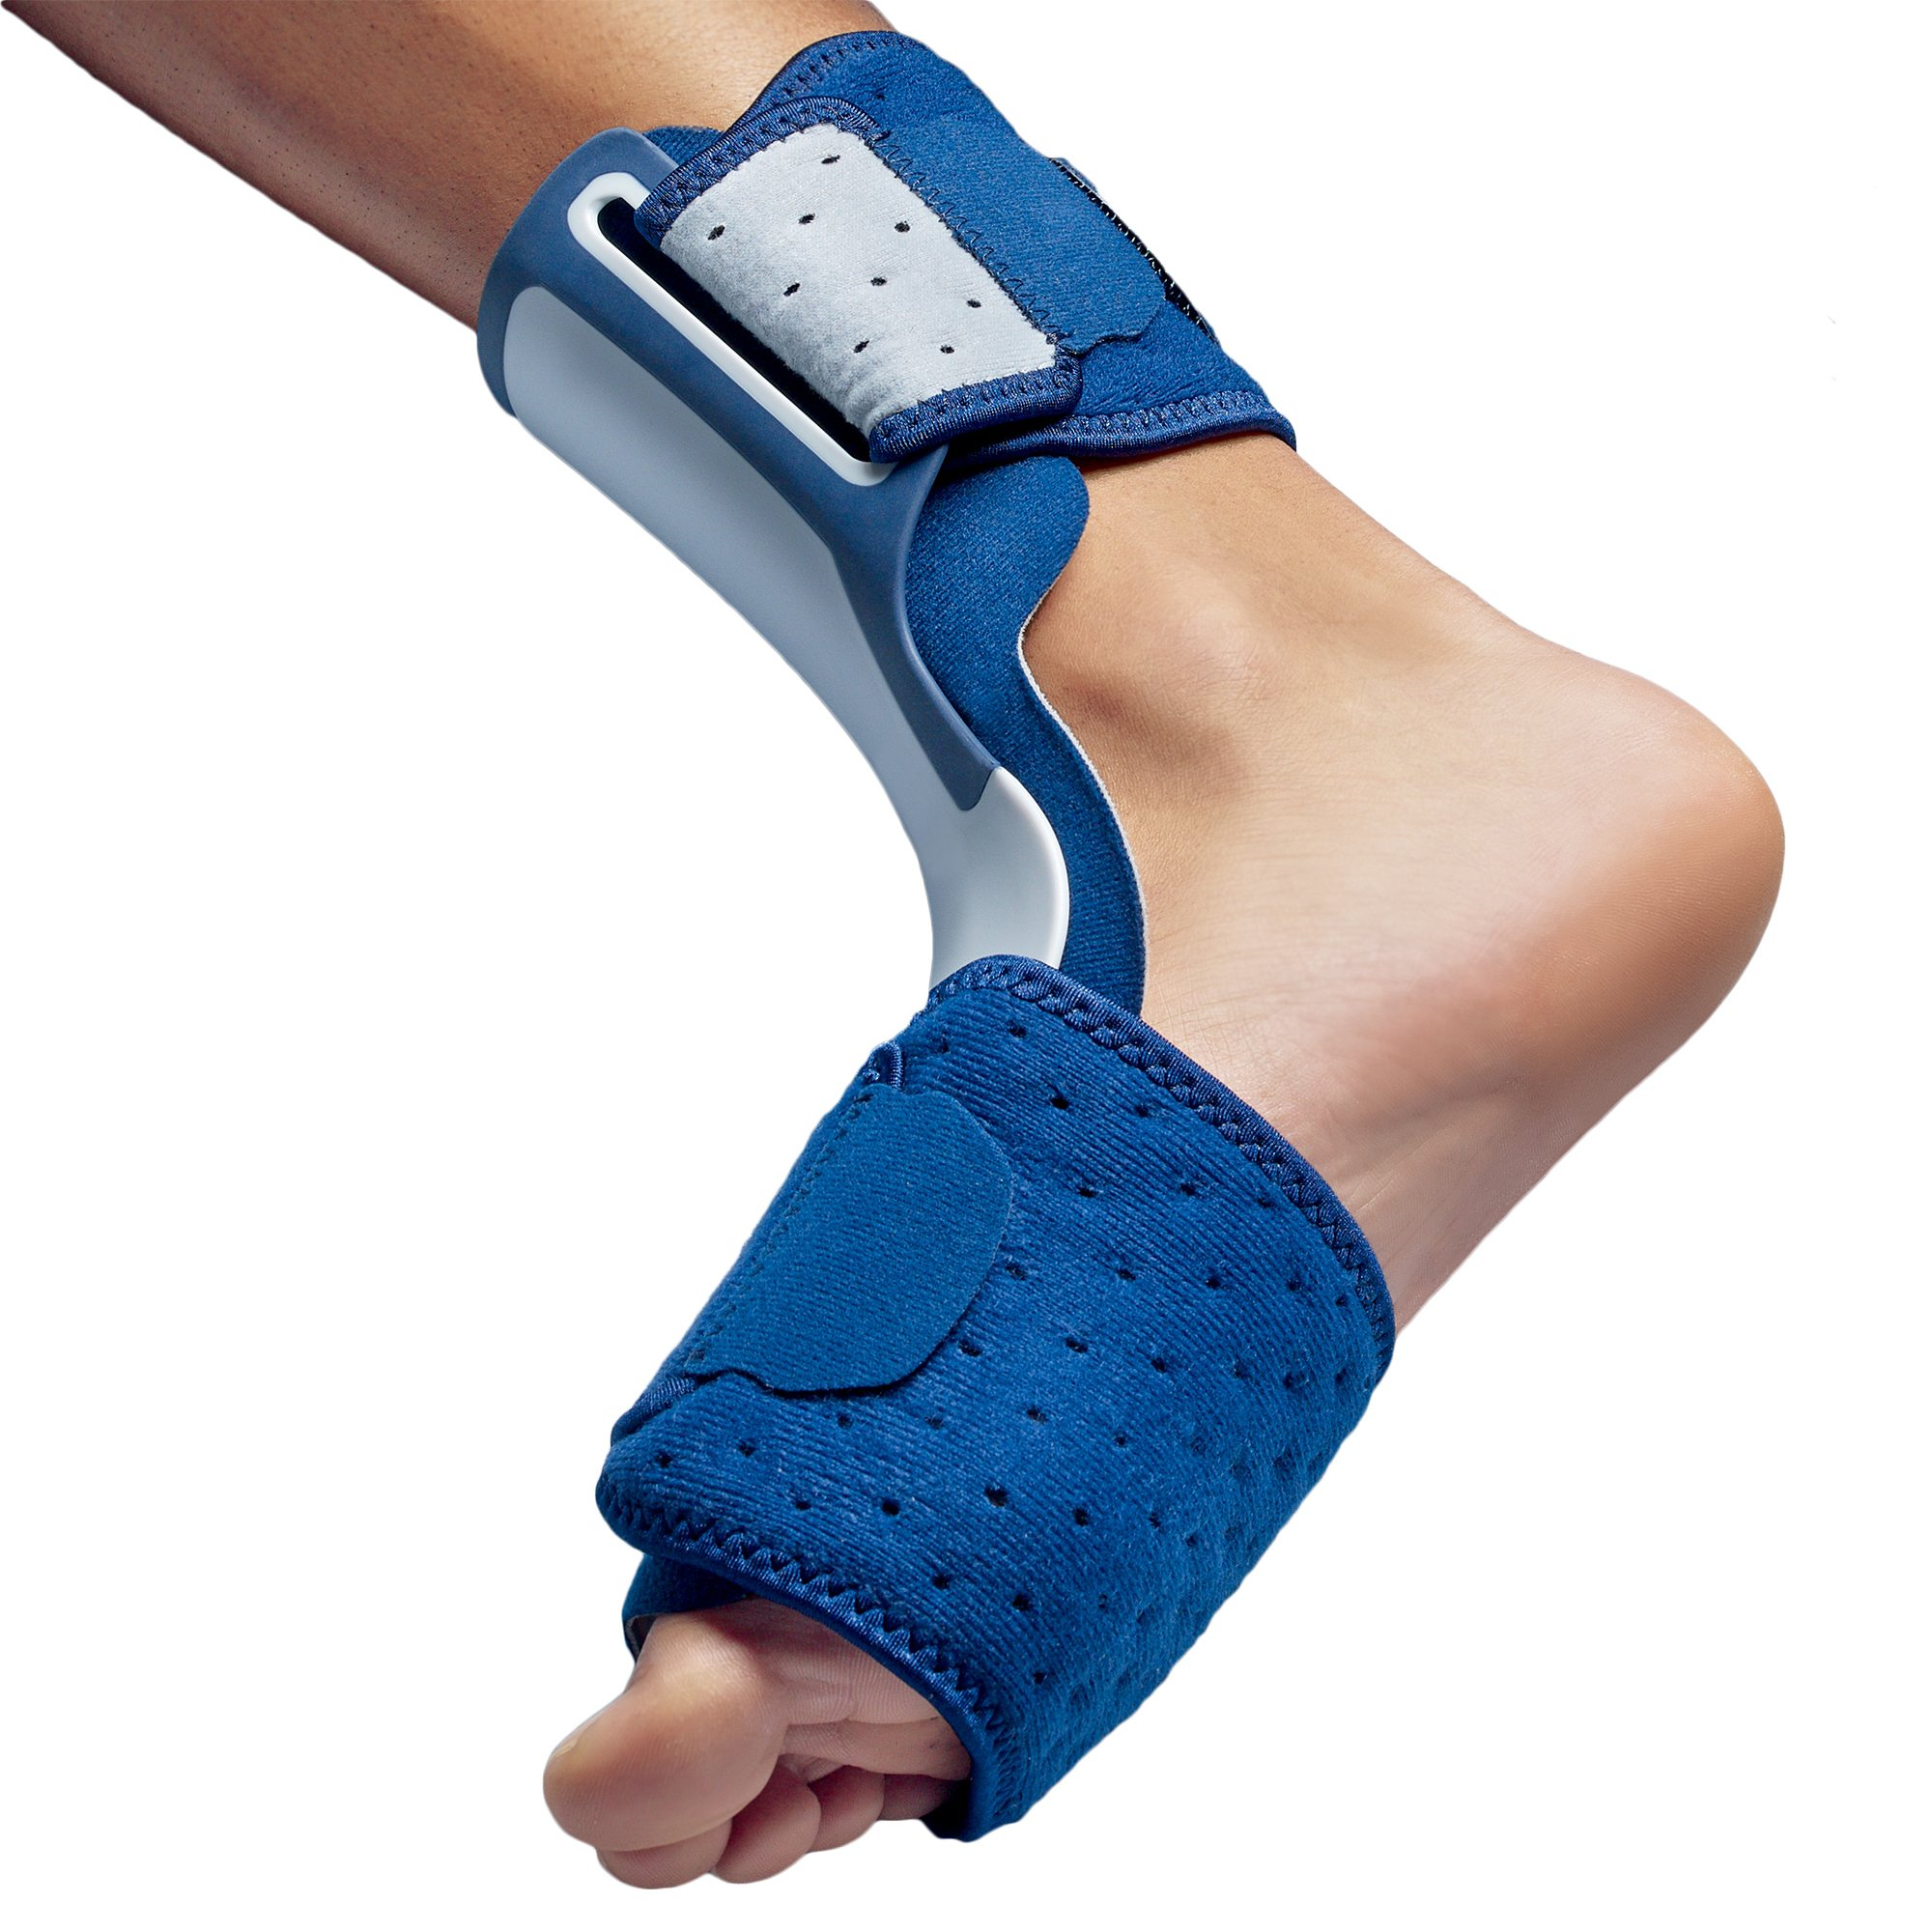 ACE Brand Plantar Fasciitis Sleep Support, America's Most Trusted Brand of Braces and Supports, Money Back Satisfaction Guarantee